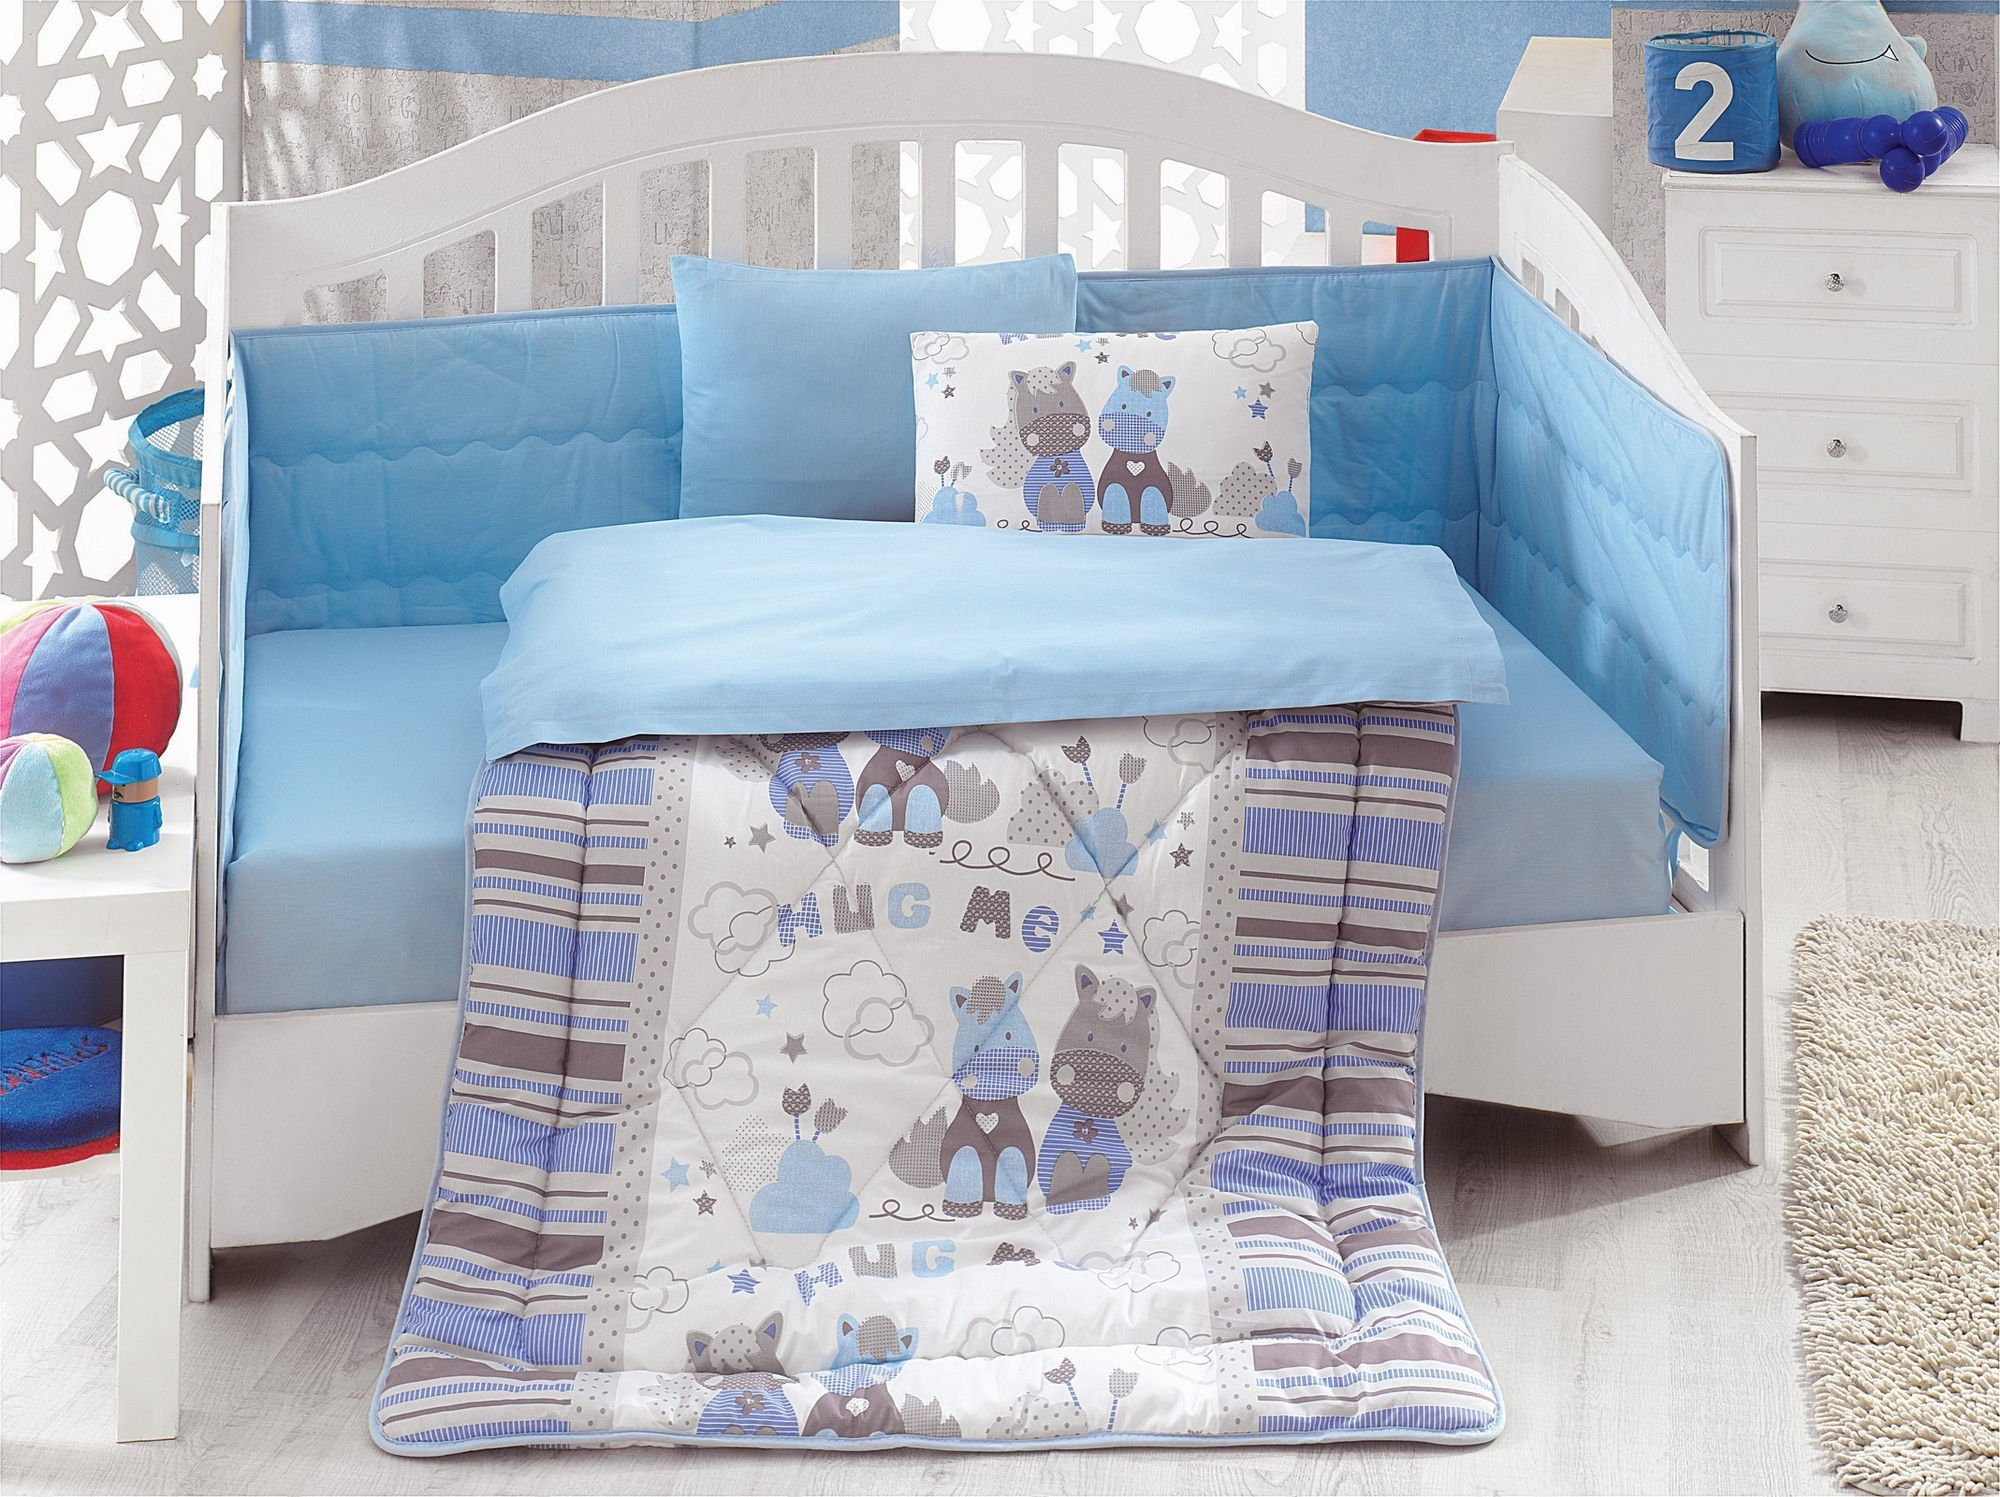 LaModaHome 6 Pcs Luxury Soft Colored Bedroom Bedding 100% Cotton Ranforce Baby Sleep Set Quilt Protector/Soft Relaxing Comfortable Pattern Design Hug Me Donkey/Baby Bed Size with Flat Seet